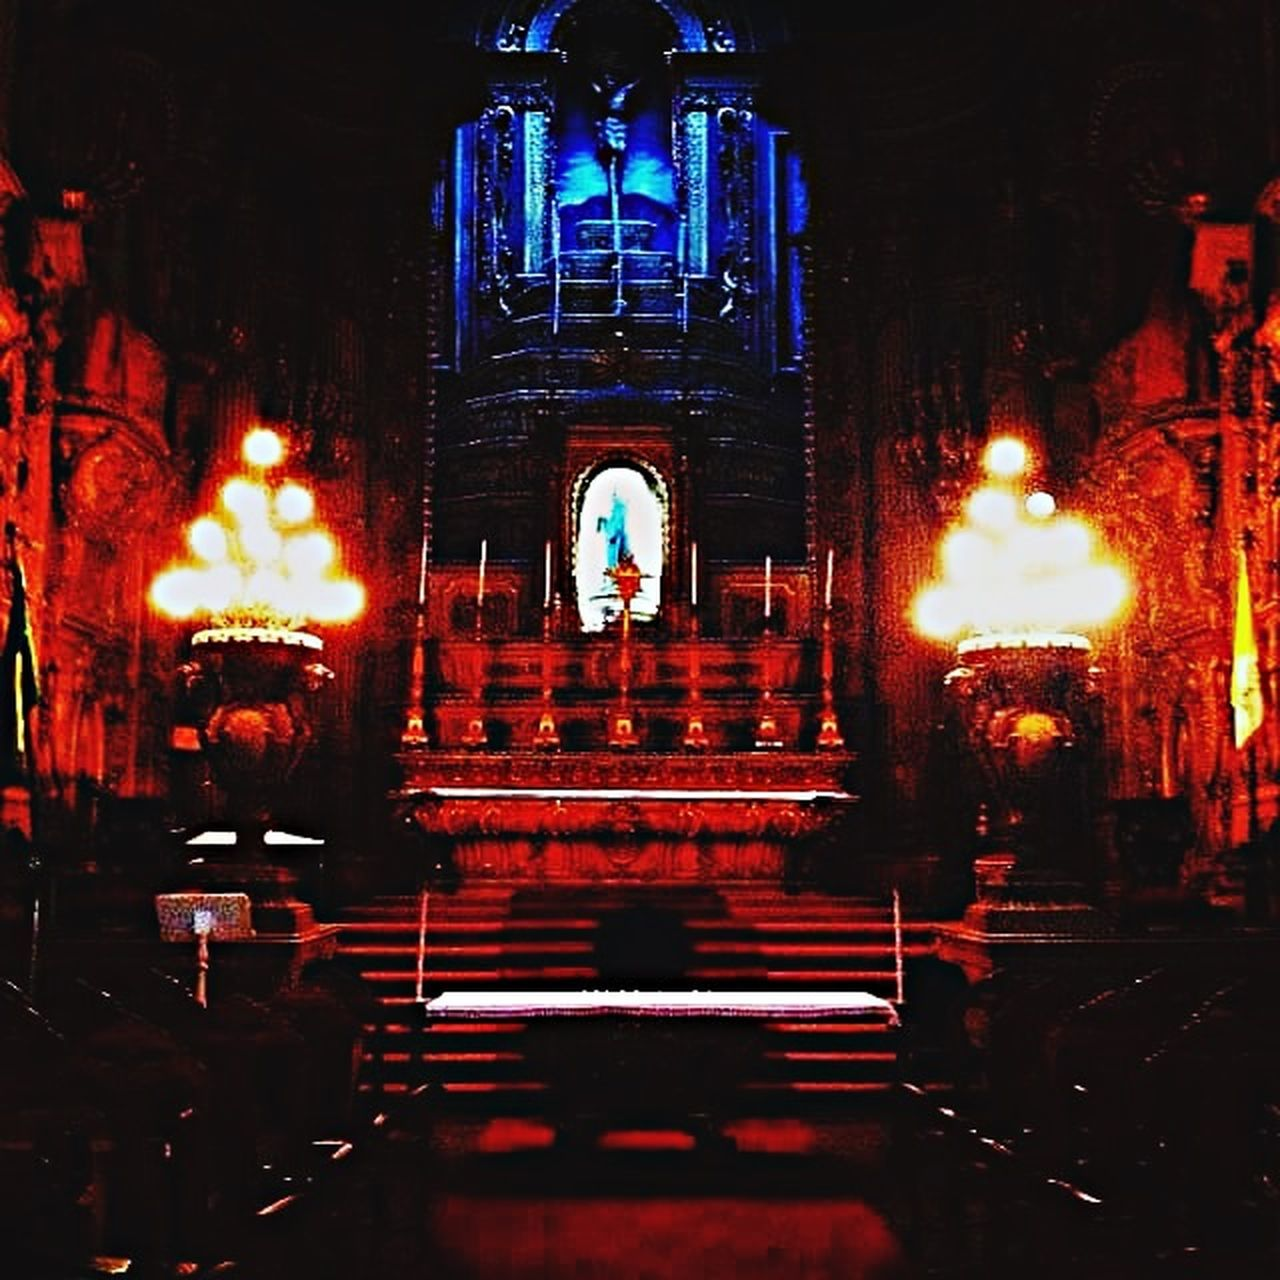 spirituality, religion, place of worship, illuminated, pew, indoors, no people, statue, built structure, night, architecture, sculpture, altar